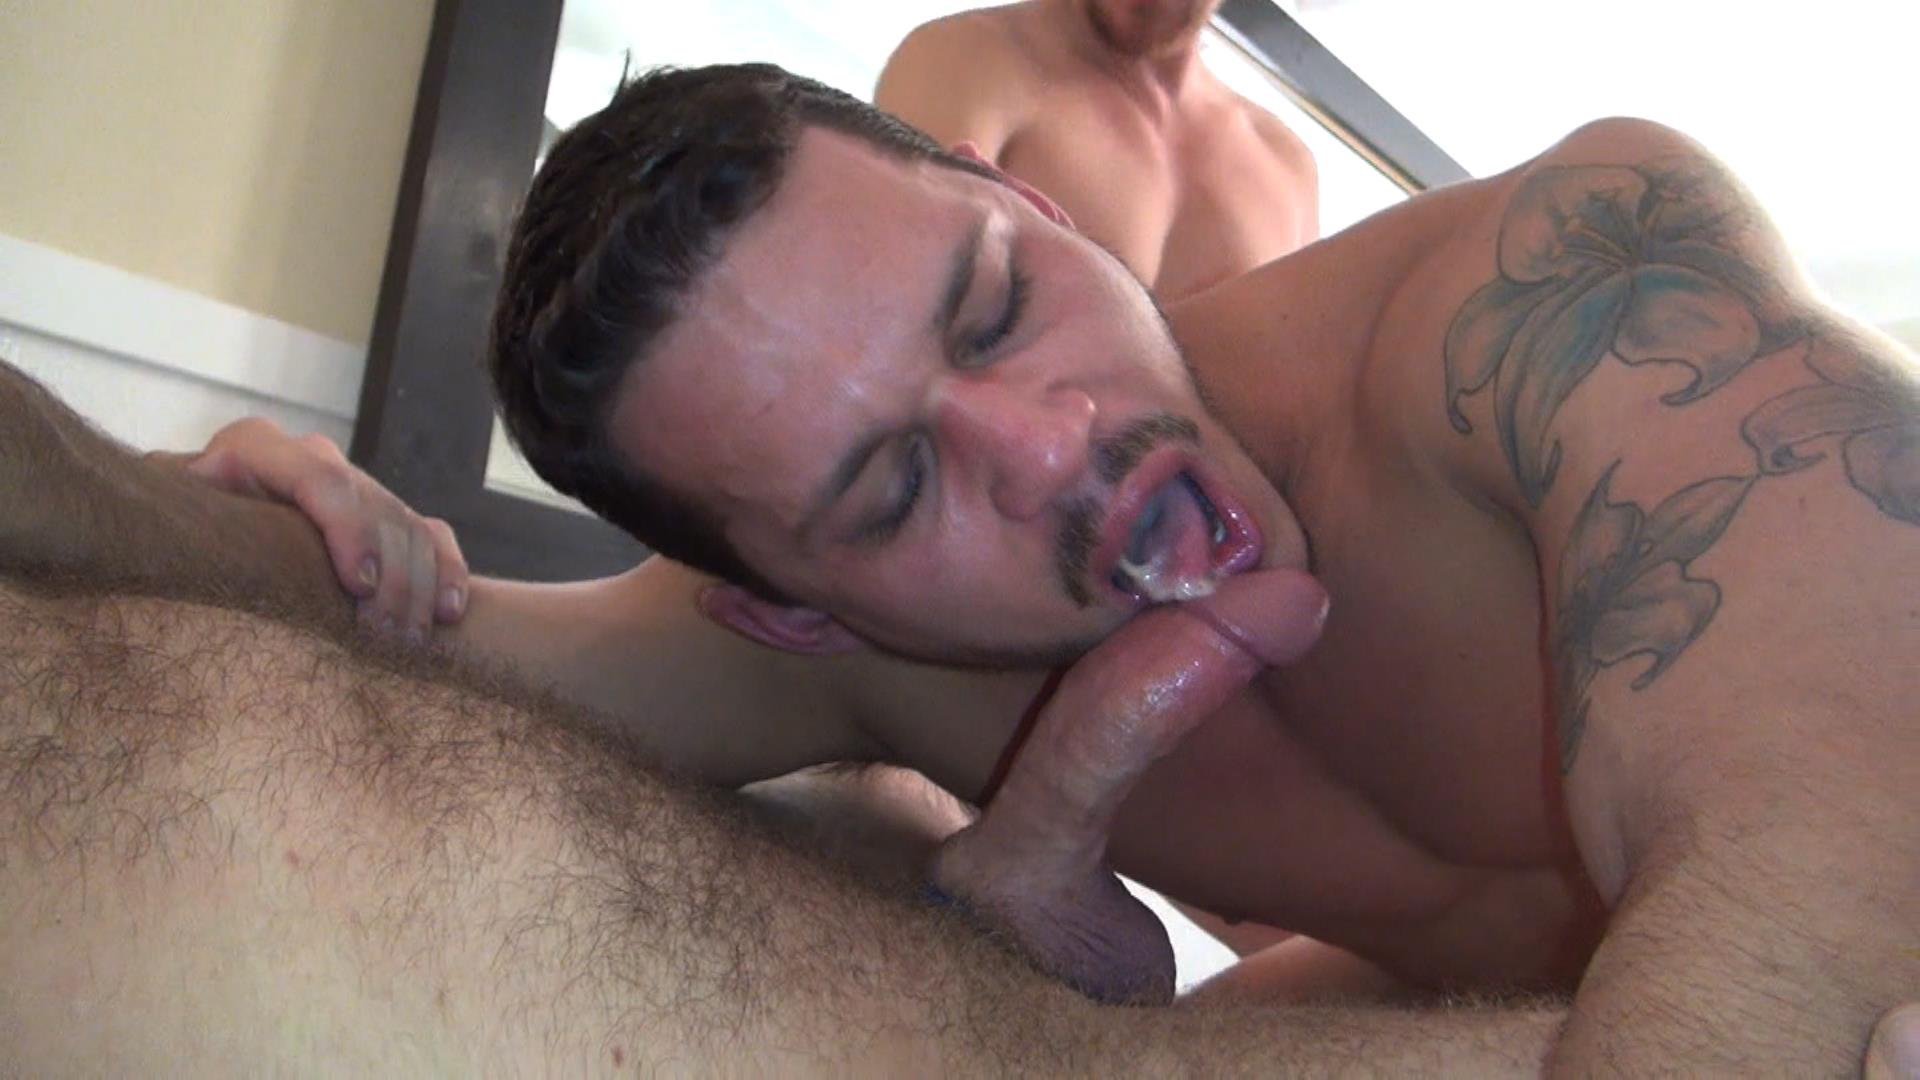 Raw Fuck Club Dayton OConnor Tate Ryder Shay Michaels Adam Russo Bareback Breeding Amateur Gay Porn 8 Tate Ryder Gets Three Hairy Muscle Daddy Bareback Cocks